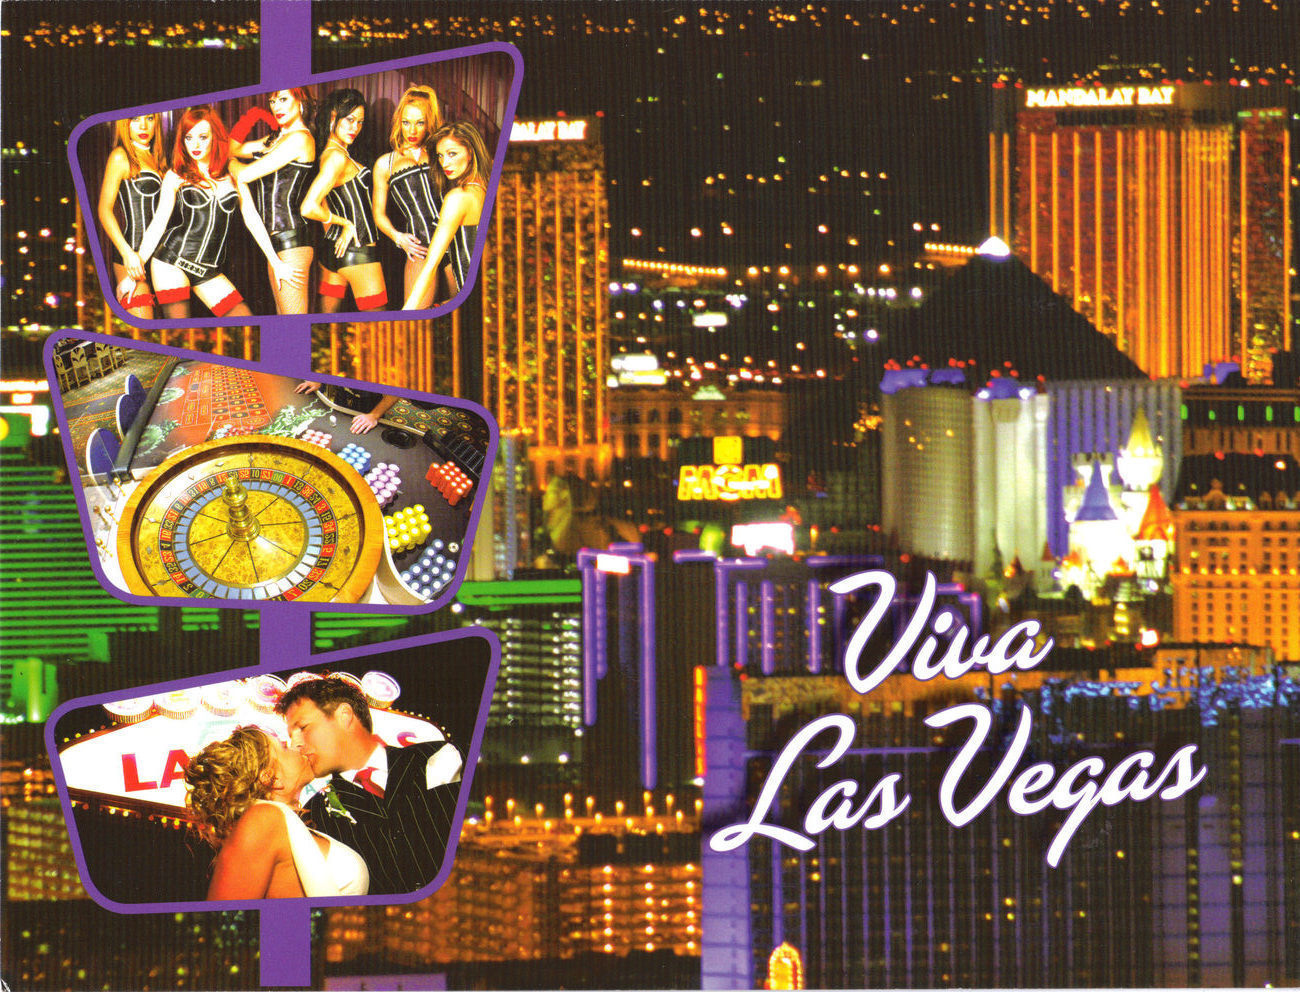 VIVA LAS VEGAS Photo Print